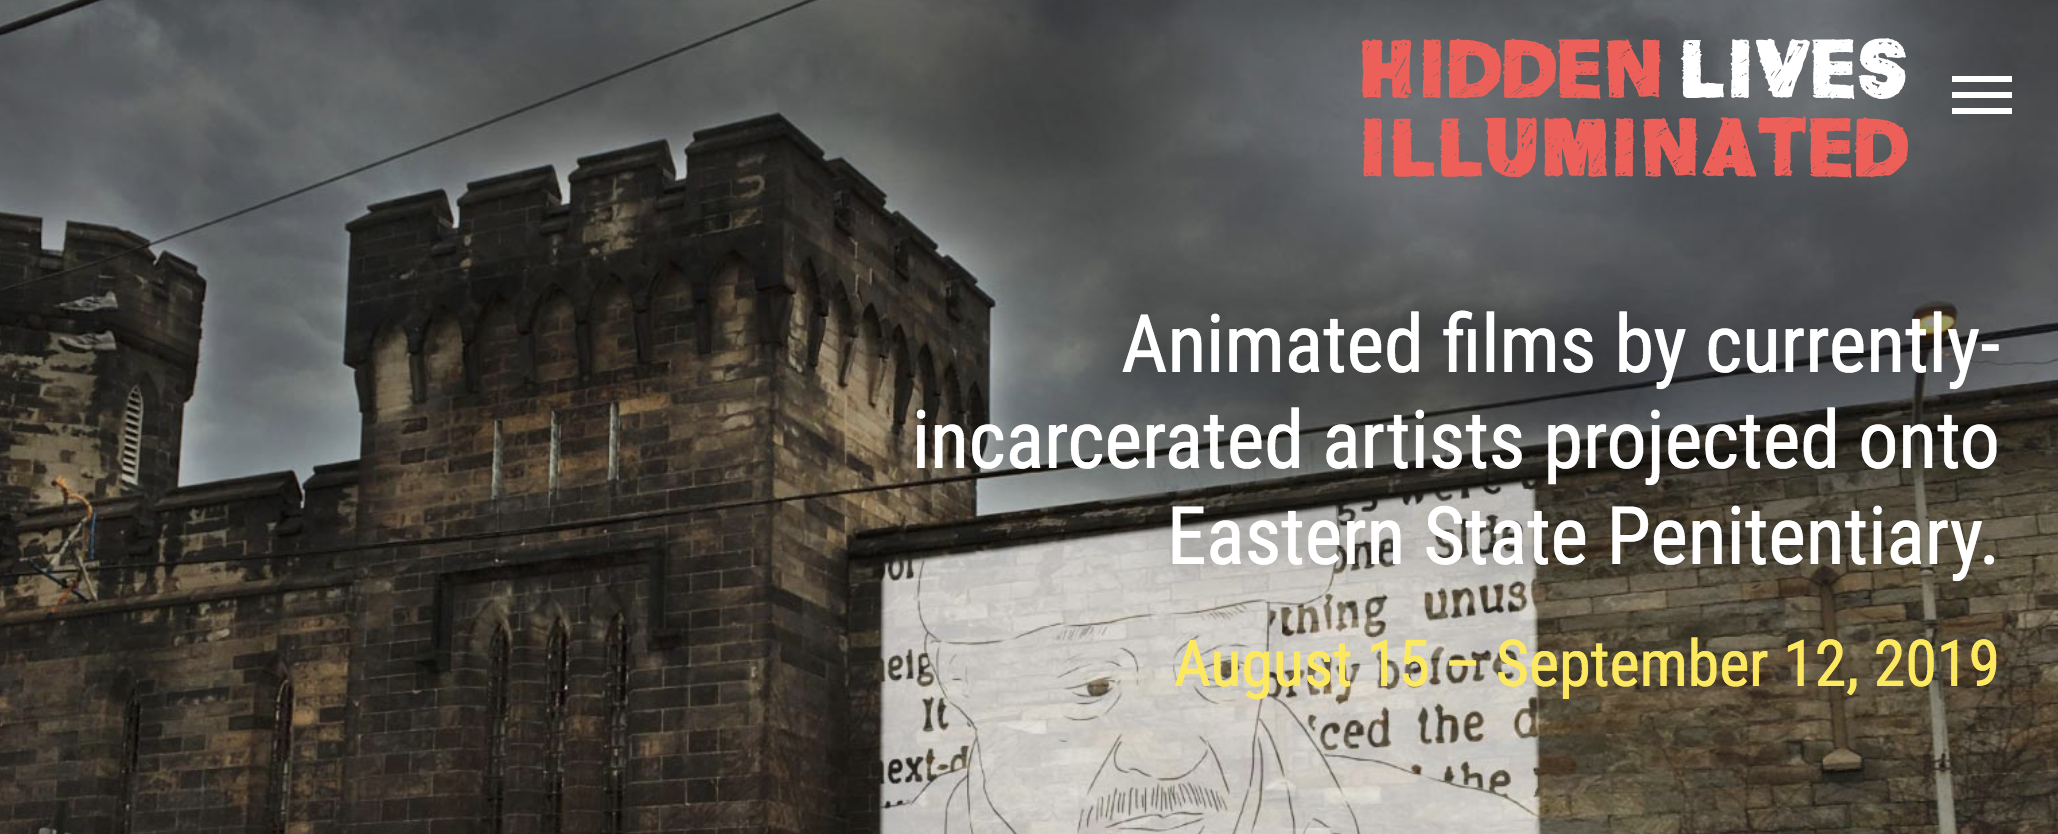 Projection event at Eastern State Penitentiary Aug. 15 - Sep. 12 2019 for 30 nights, 7PM/8PM/9PM. Screening schedule: http://hiddenlives.org.